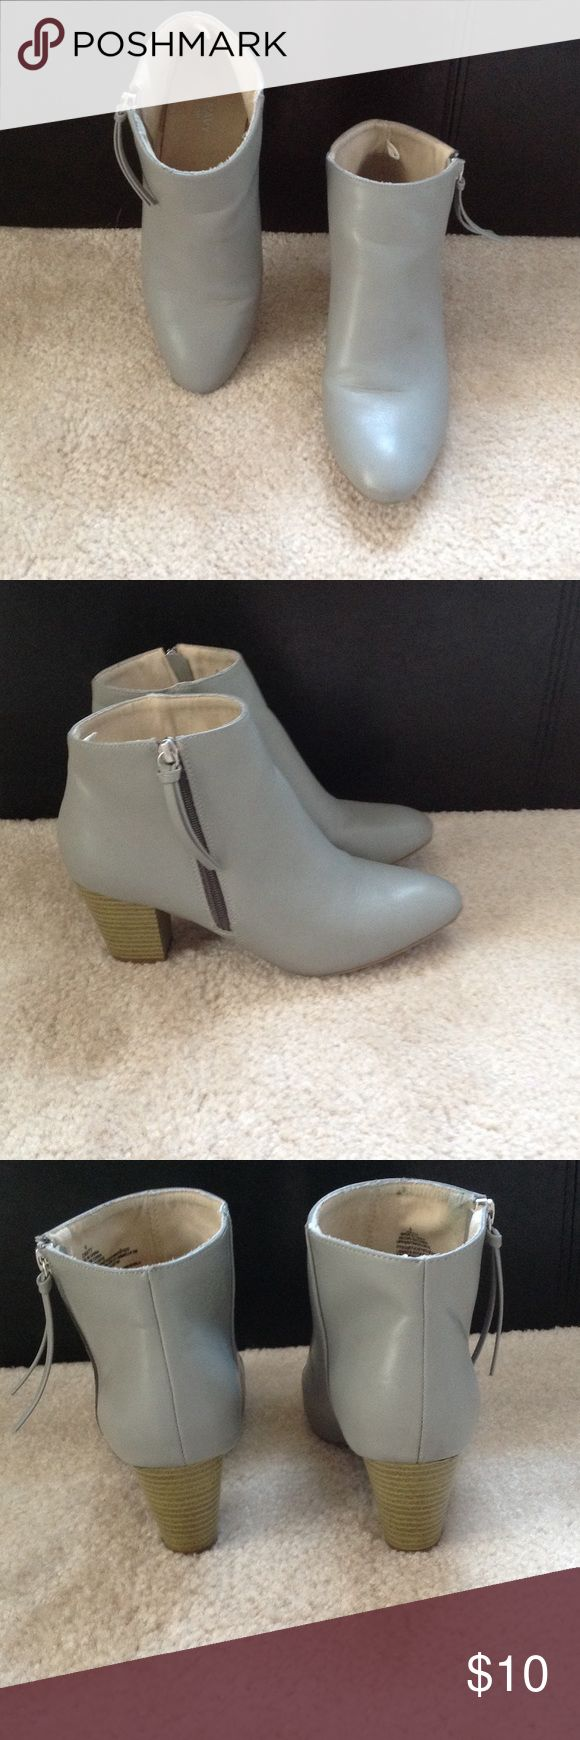 Old Navy Ankle Boots Only worn a couple of times. Cute and comfortable. Old Navy Shoes Ankle Boots & Booties